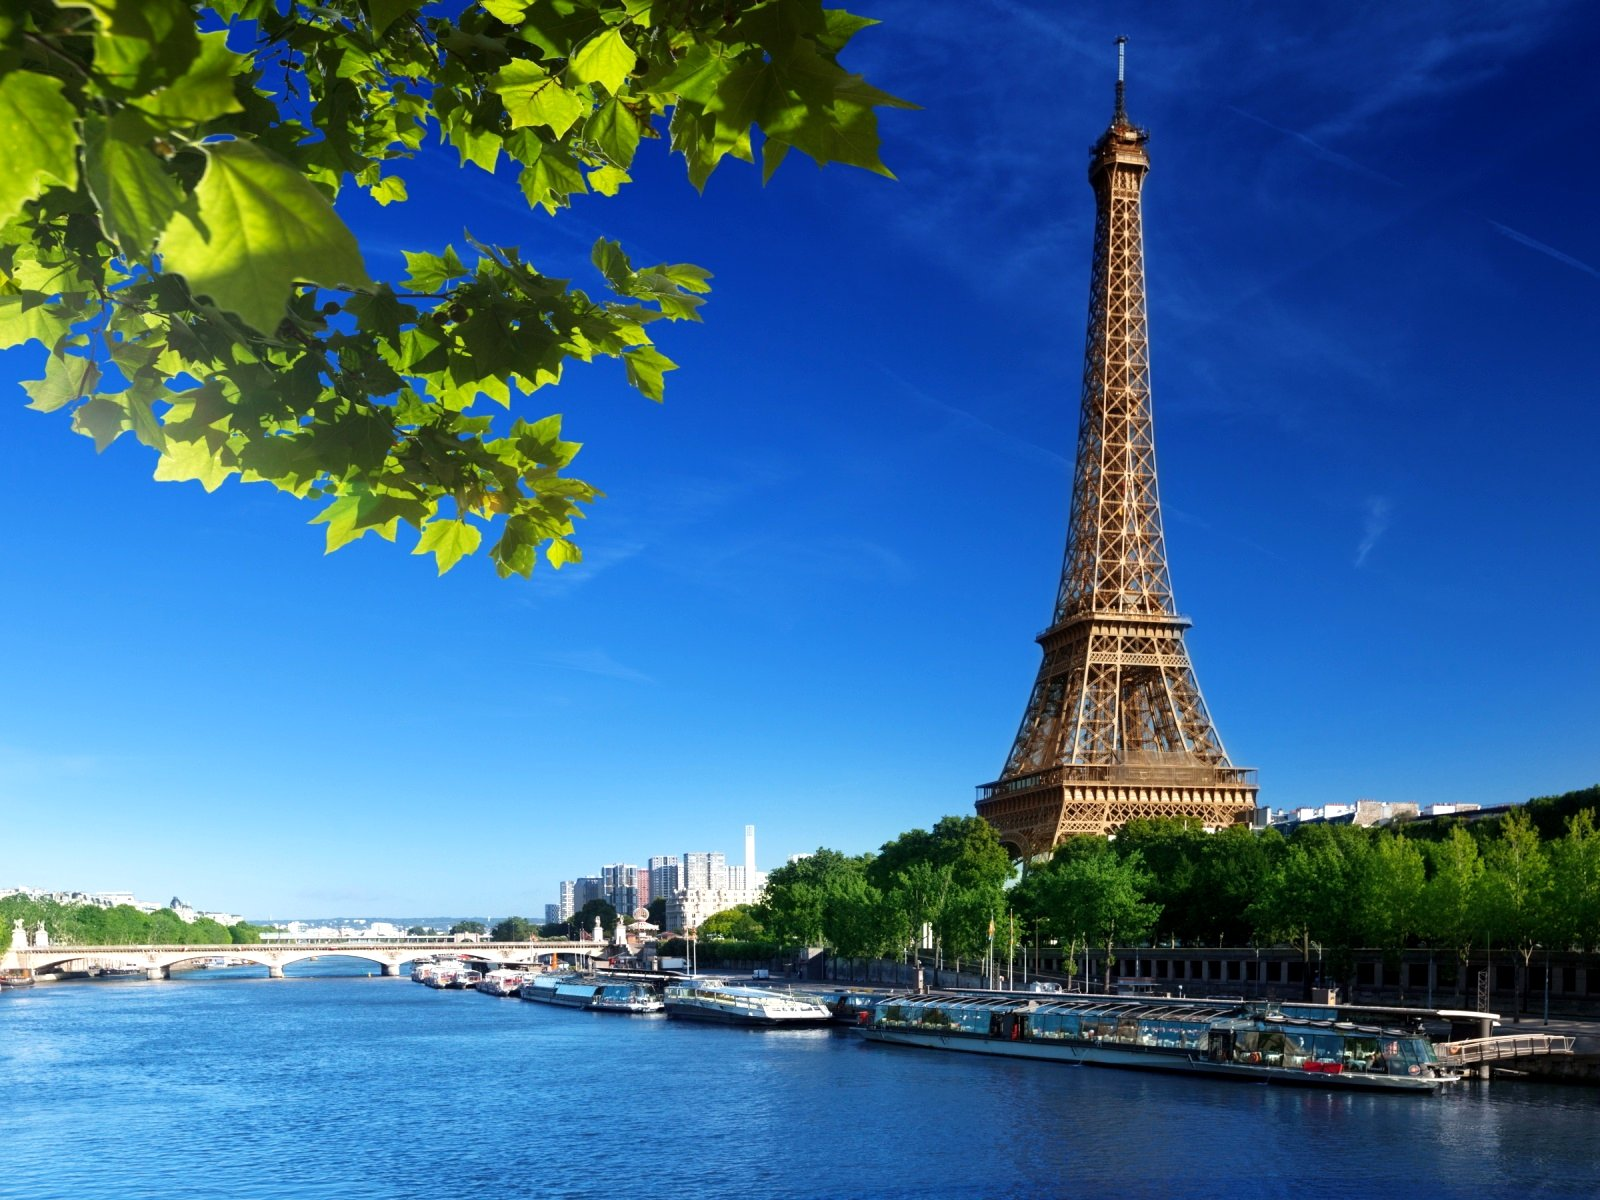 Eiffel Tower along the River Seine, Paris, France Google image from http://www.mrwallpaper.com/wallpapers/eiffel-tower-seine-river-1600x1200.jpg